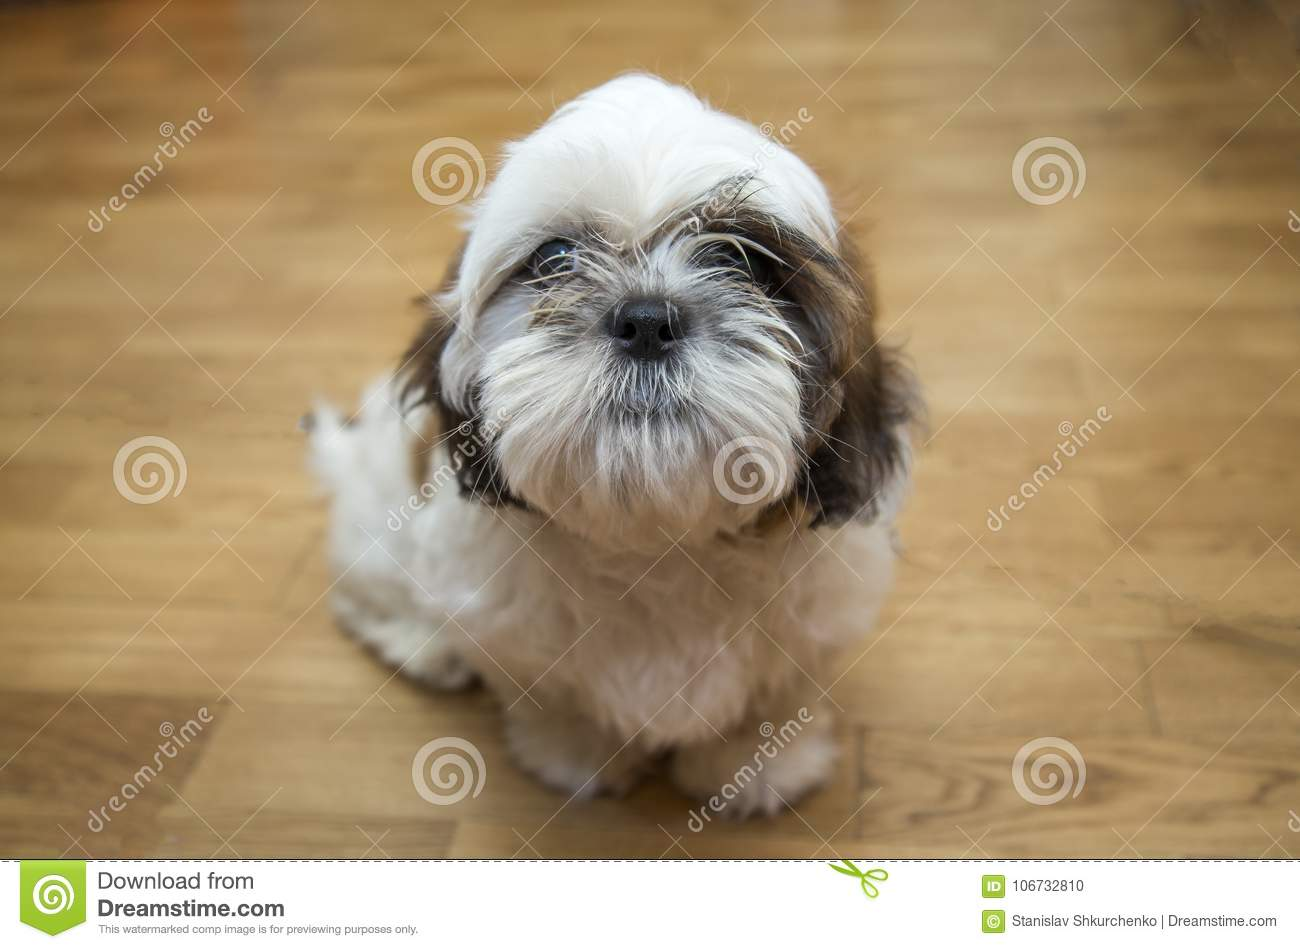 Shih Tzu Puppy Breed Tiny Dog Age 6 Month Playfulness Loveliness Stock Photo Image Of Young Front 106732810